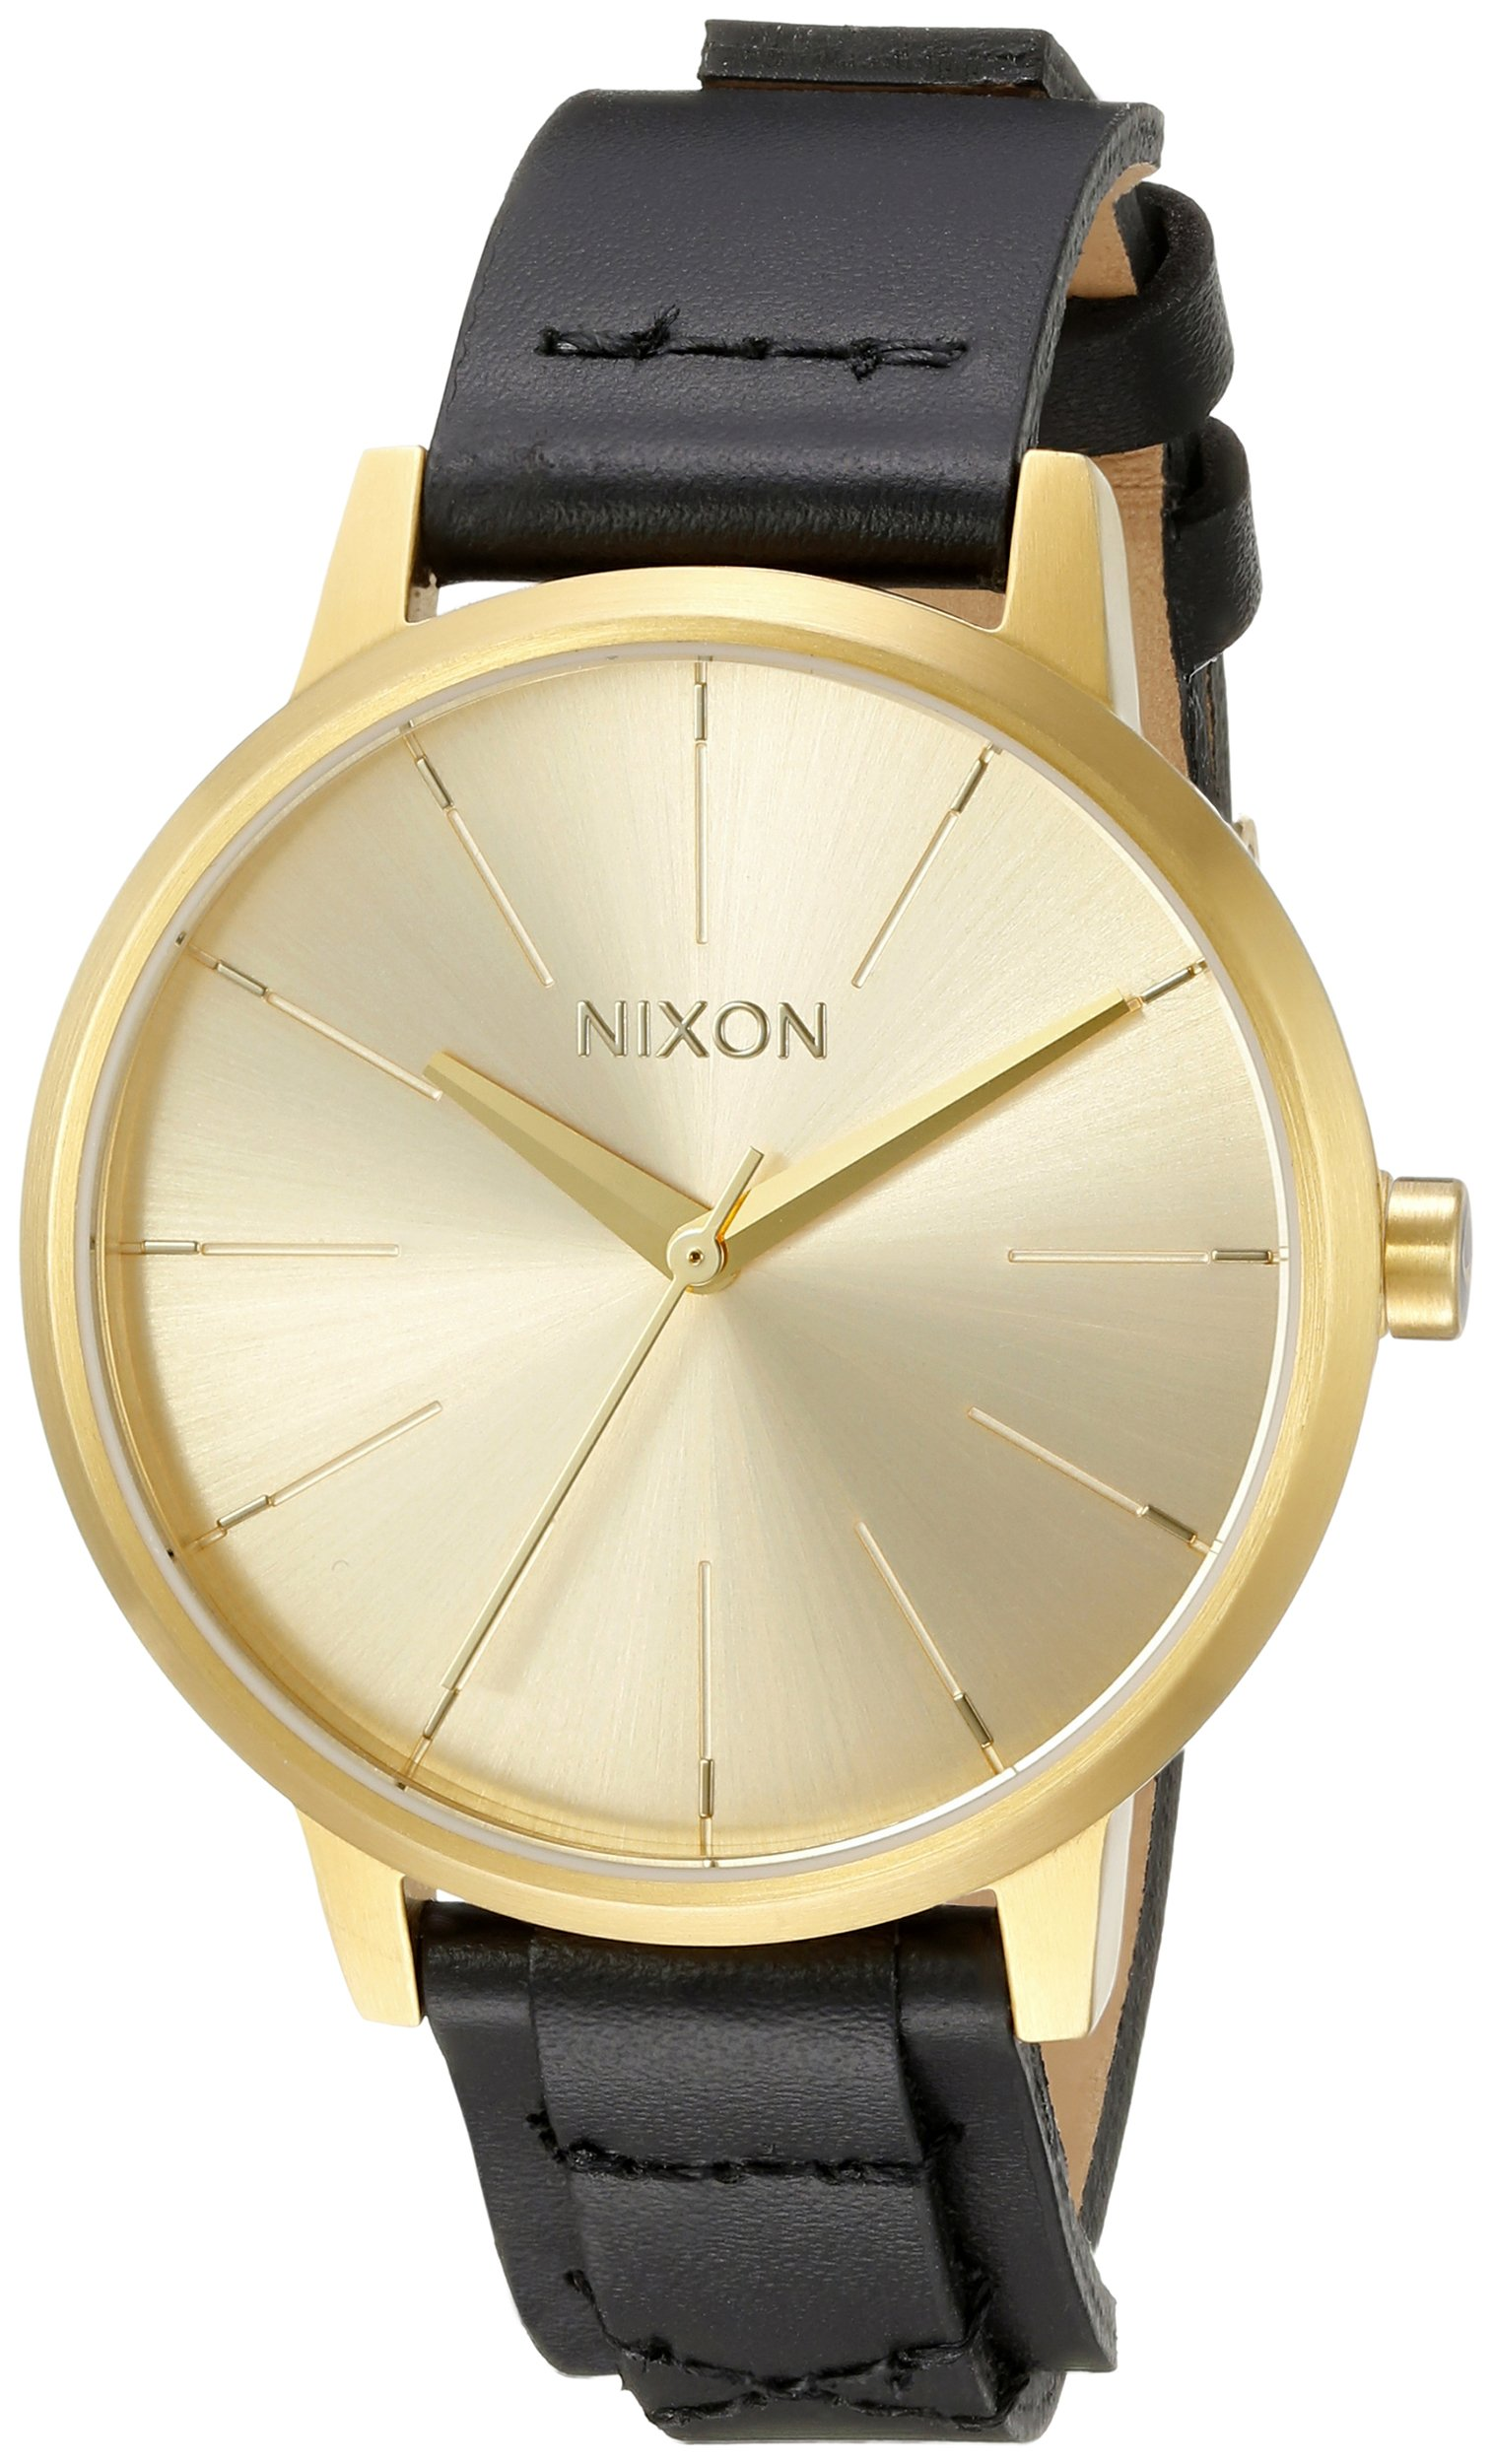 Nixon Women's A1082143 Kensington Gold-Tone Watch with Black Genuine Leather Band by NIXON